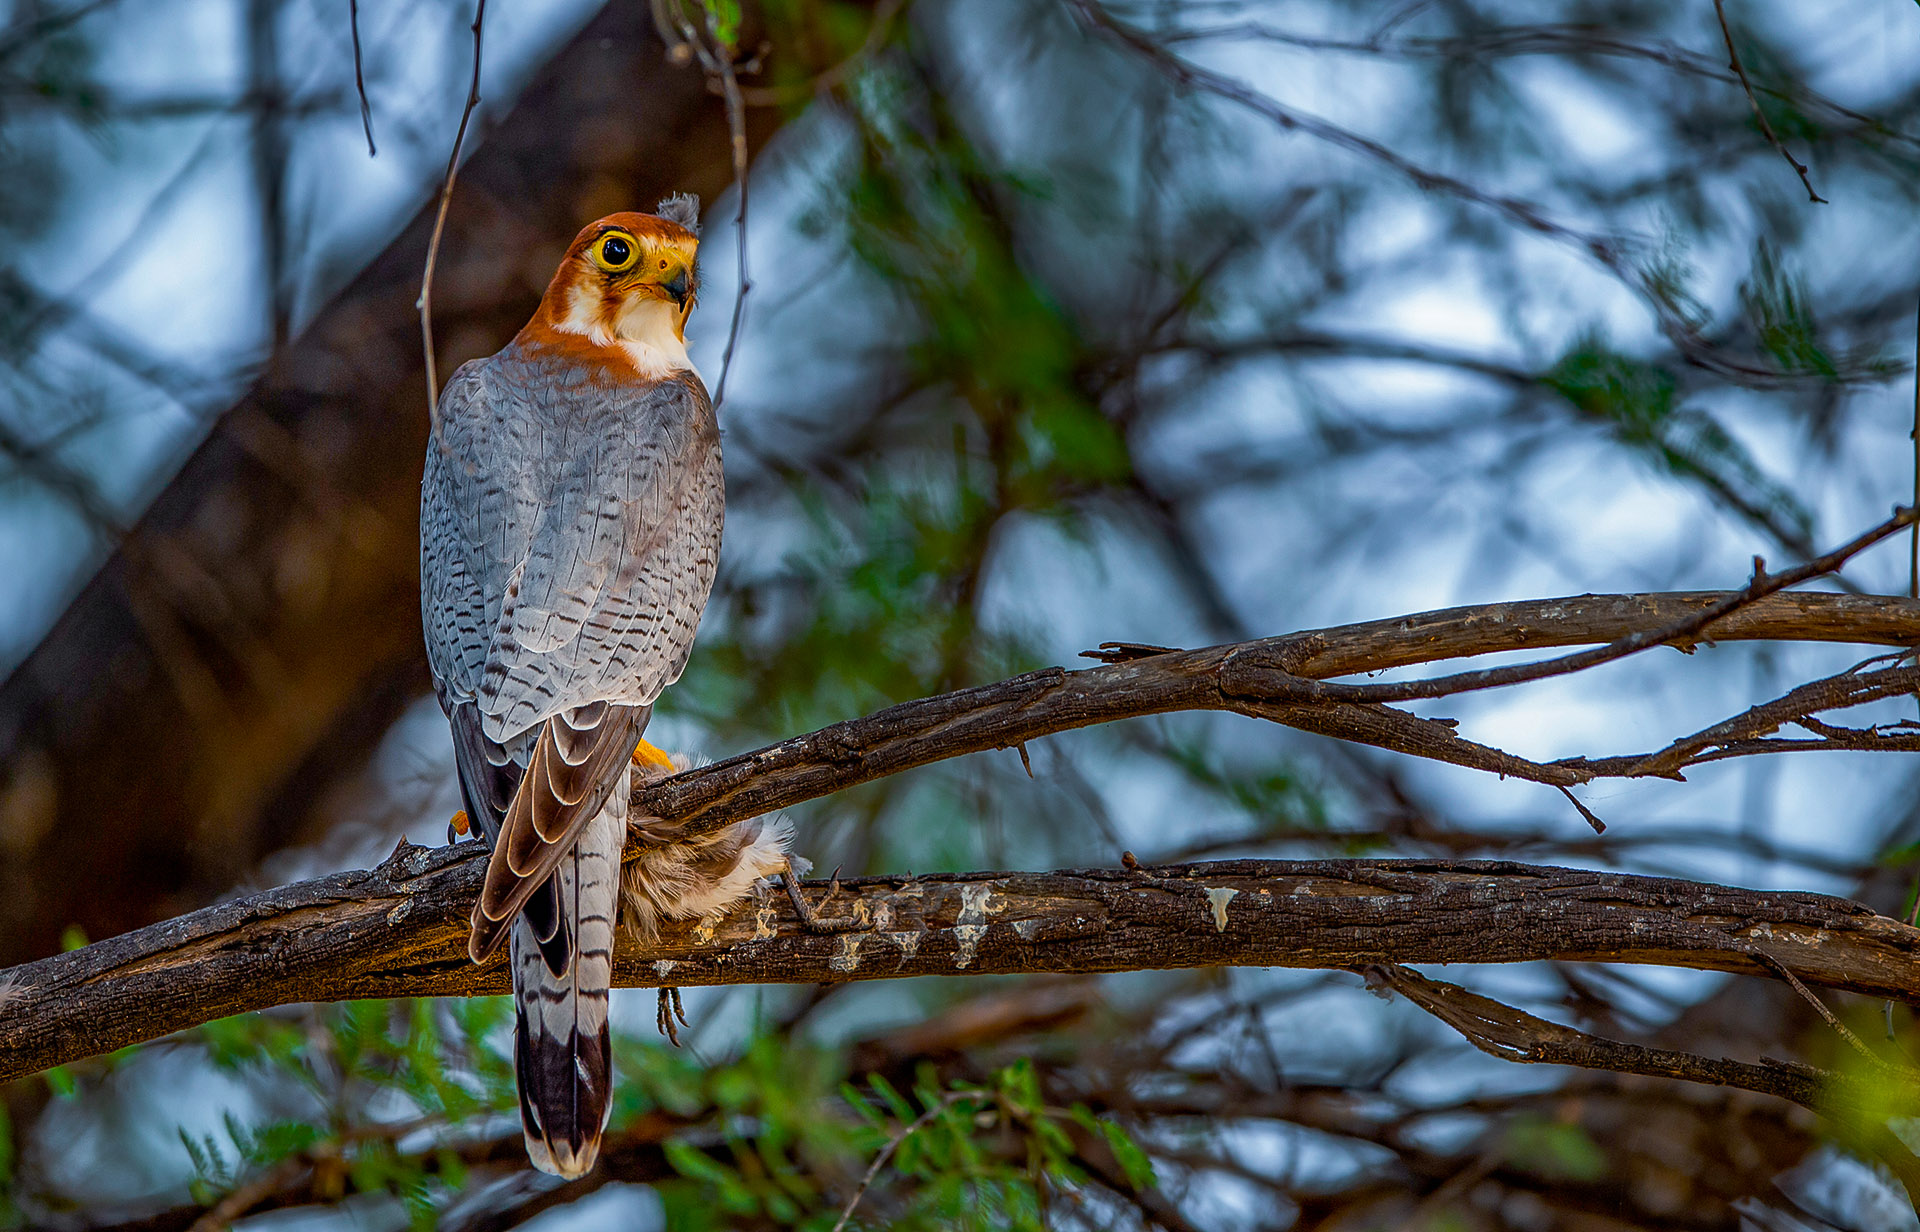 """Like the laggar falcon, the red-necked falcon (Falco chicquera) also has a yellow beak and feet, and """"nests around villages or even within densely populated cities in India,"""" according to the IUCN. Studies show breeding populations in Gujarat and Rajasthan, and in cities like Pune and Bengaluru, though increased human habitation has led to a decline in their numbers. """"Possibly due to pesticide use,"""" says Dr Rahmani, """"as they feed on small birds and large insects,"""" that have ingested the chemicals. Red-necked falcons are known to occupy abandoned nests of crows and other raptors. Photo: Sourabh Bharti/Shutterstock"""